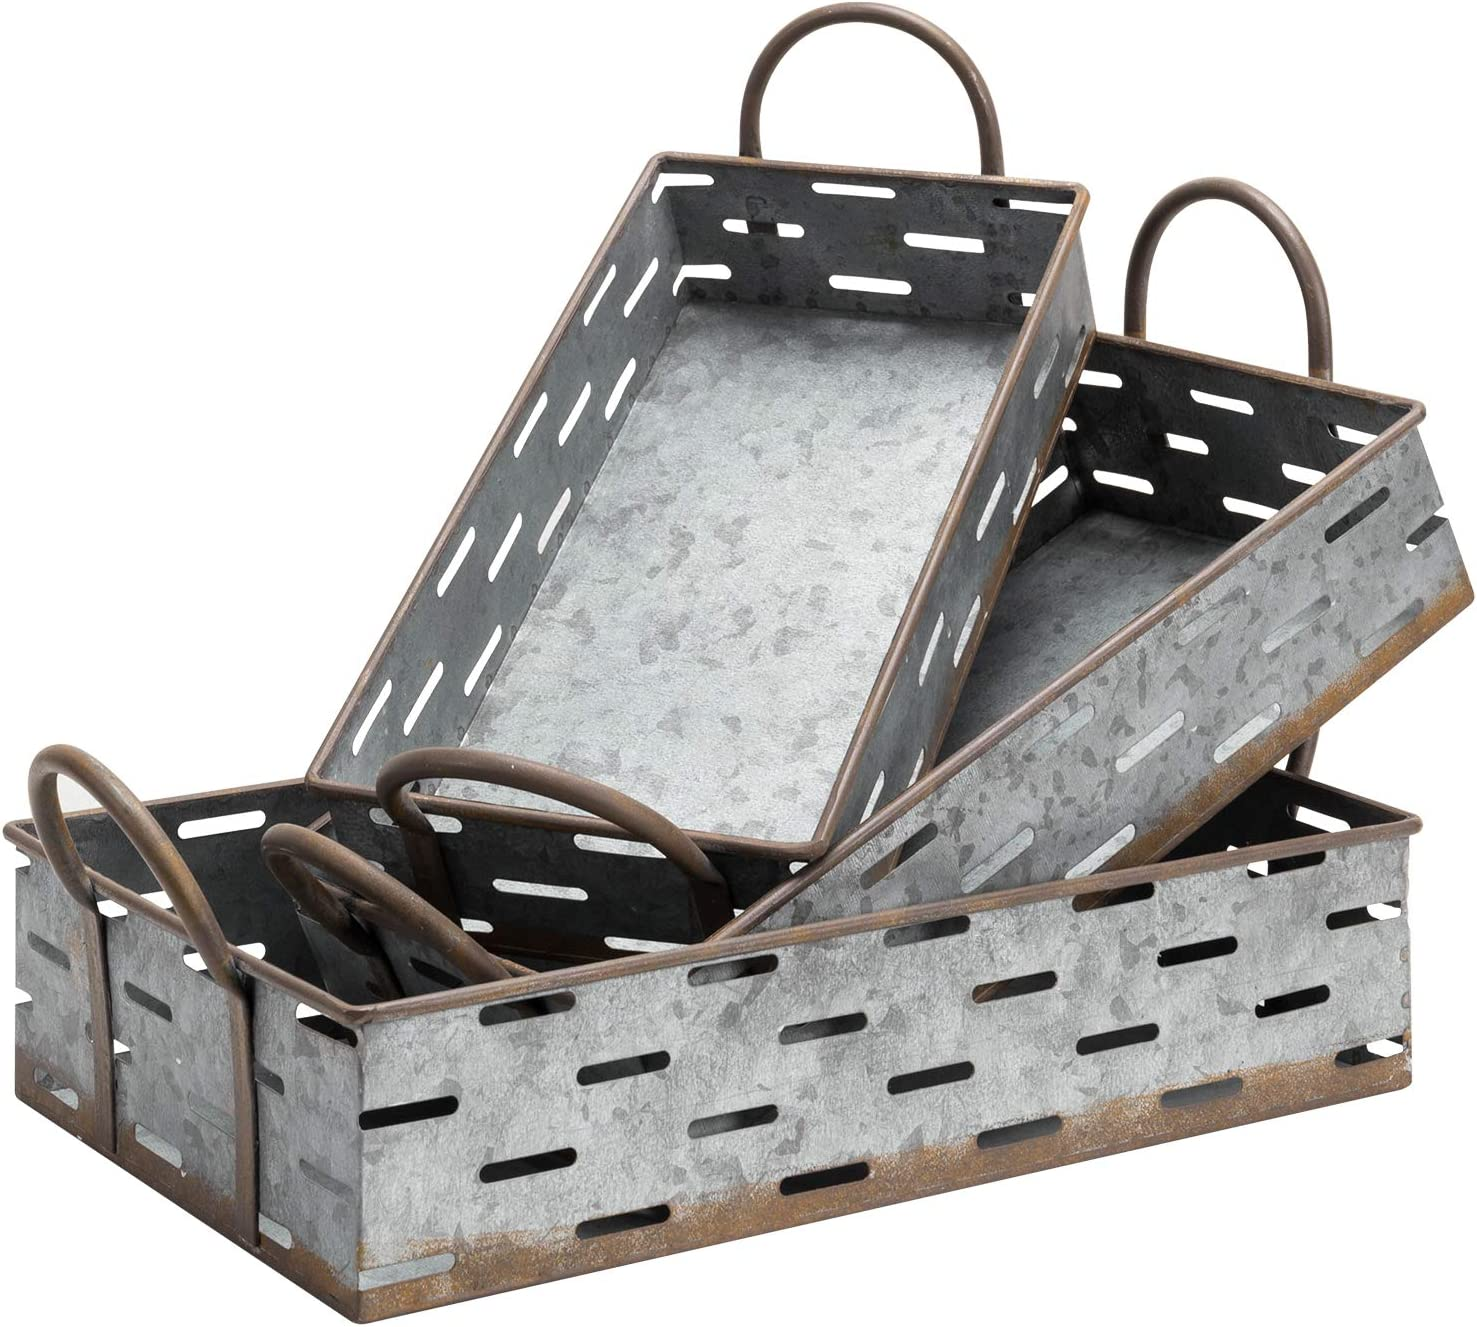 MyGift Vintage Galvanized Silver Metal Nesting Serving Trays with Rust Style Trim & Handles, Set of 3